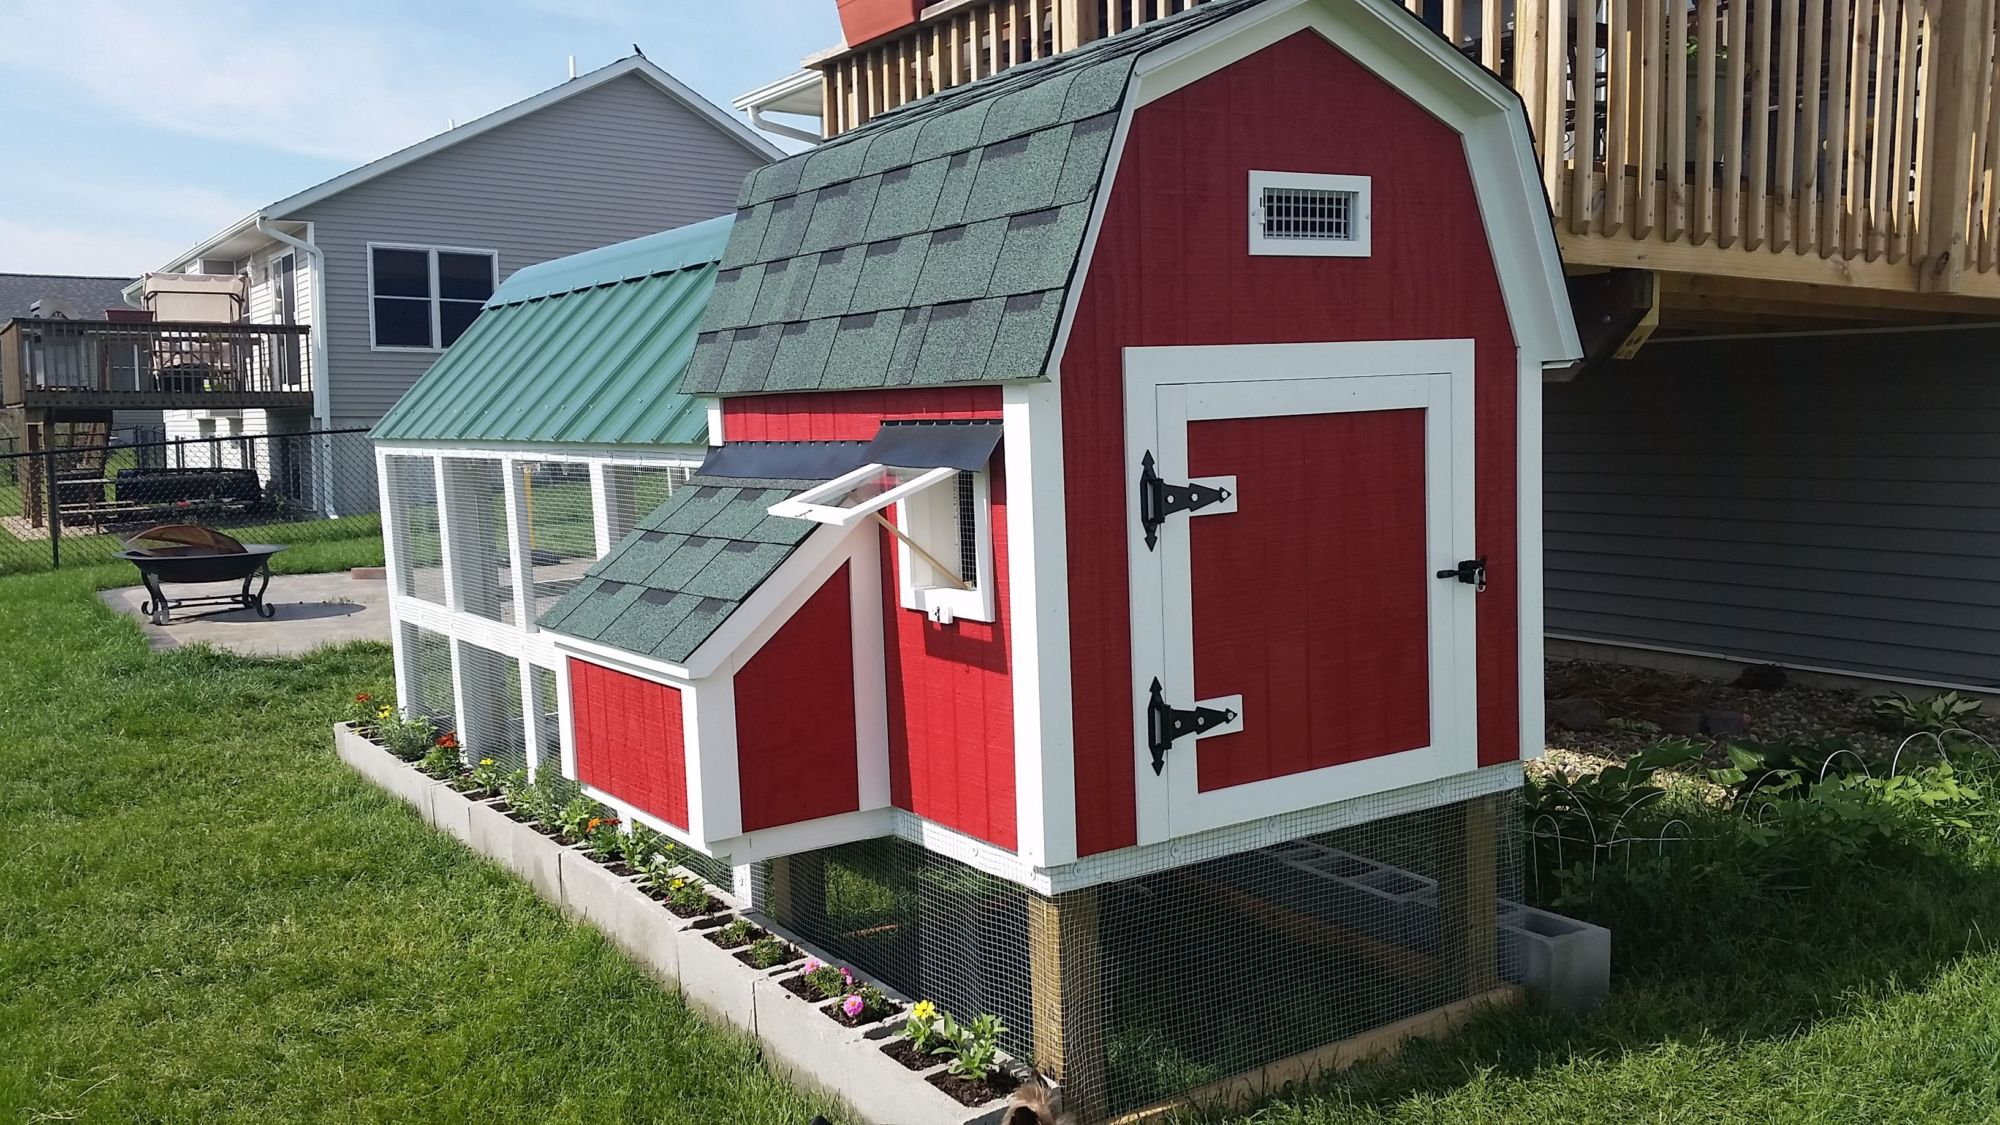 barn style coop with 4x10 run in a suburban neighborhood